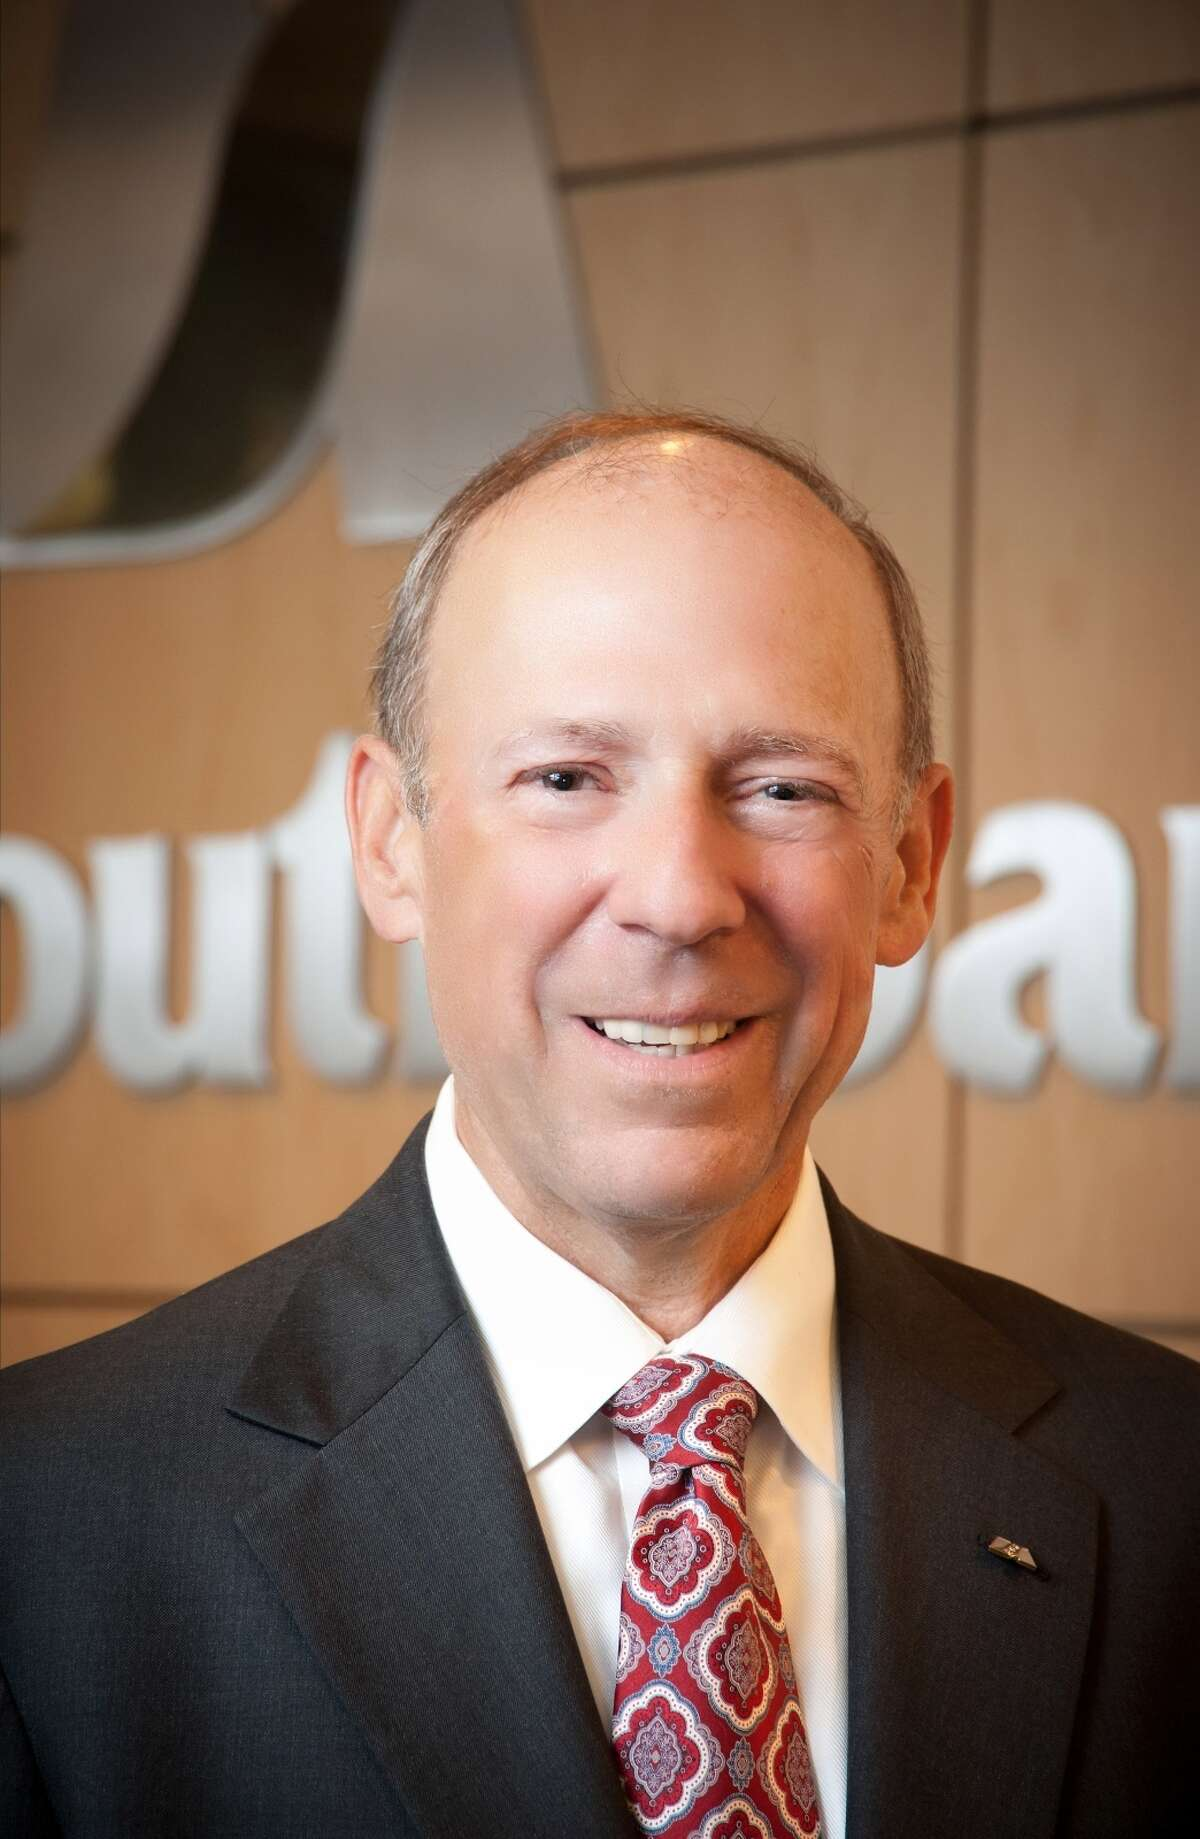 Midsouth Bank has named Joe Tortorice, Jr., vice chairman of the board, effective Dec. 31, 2016. (Contributed photo)